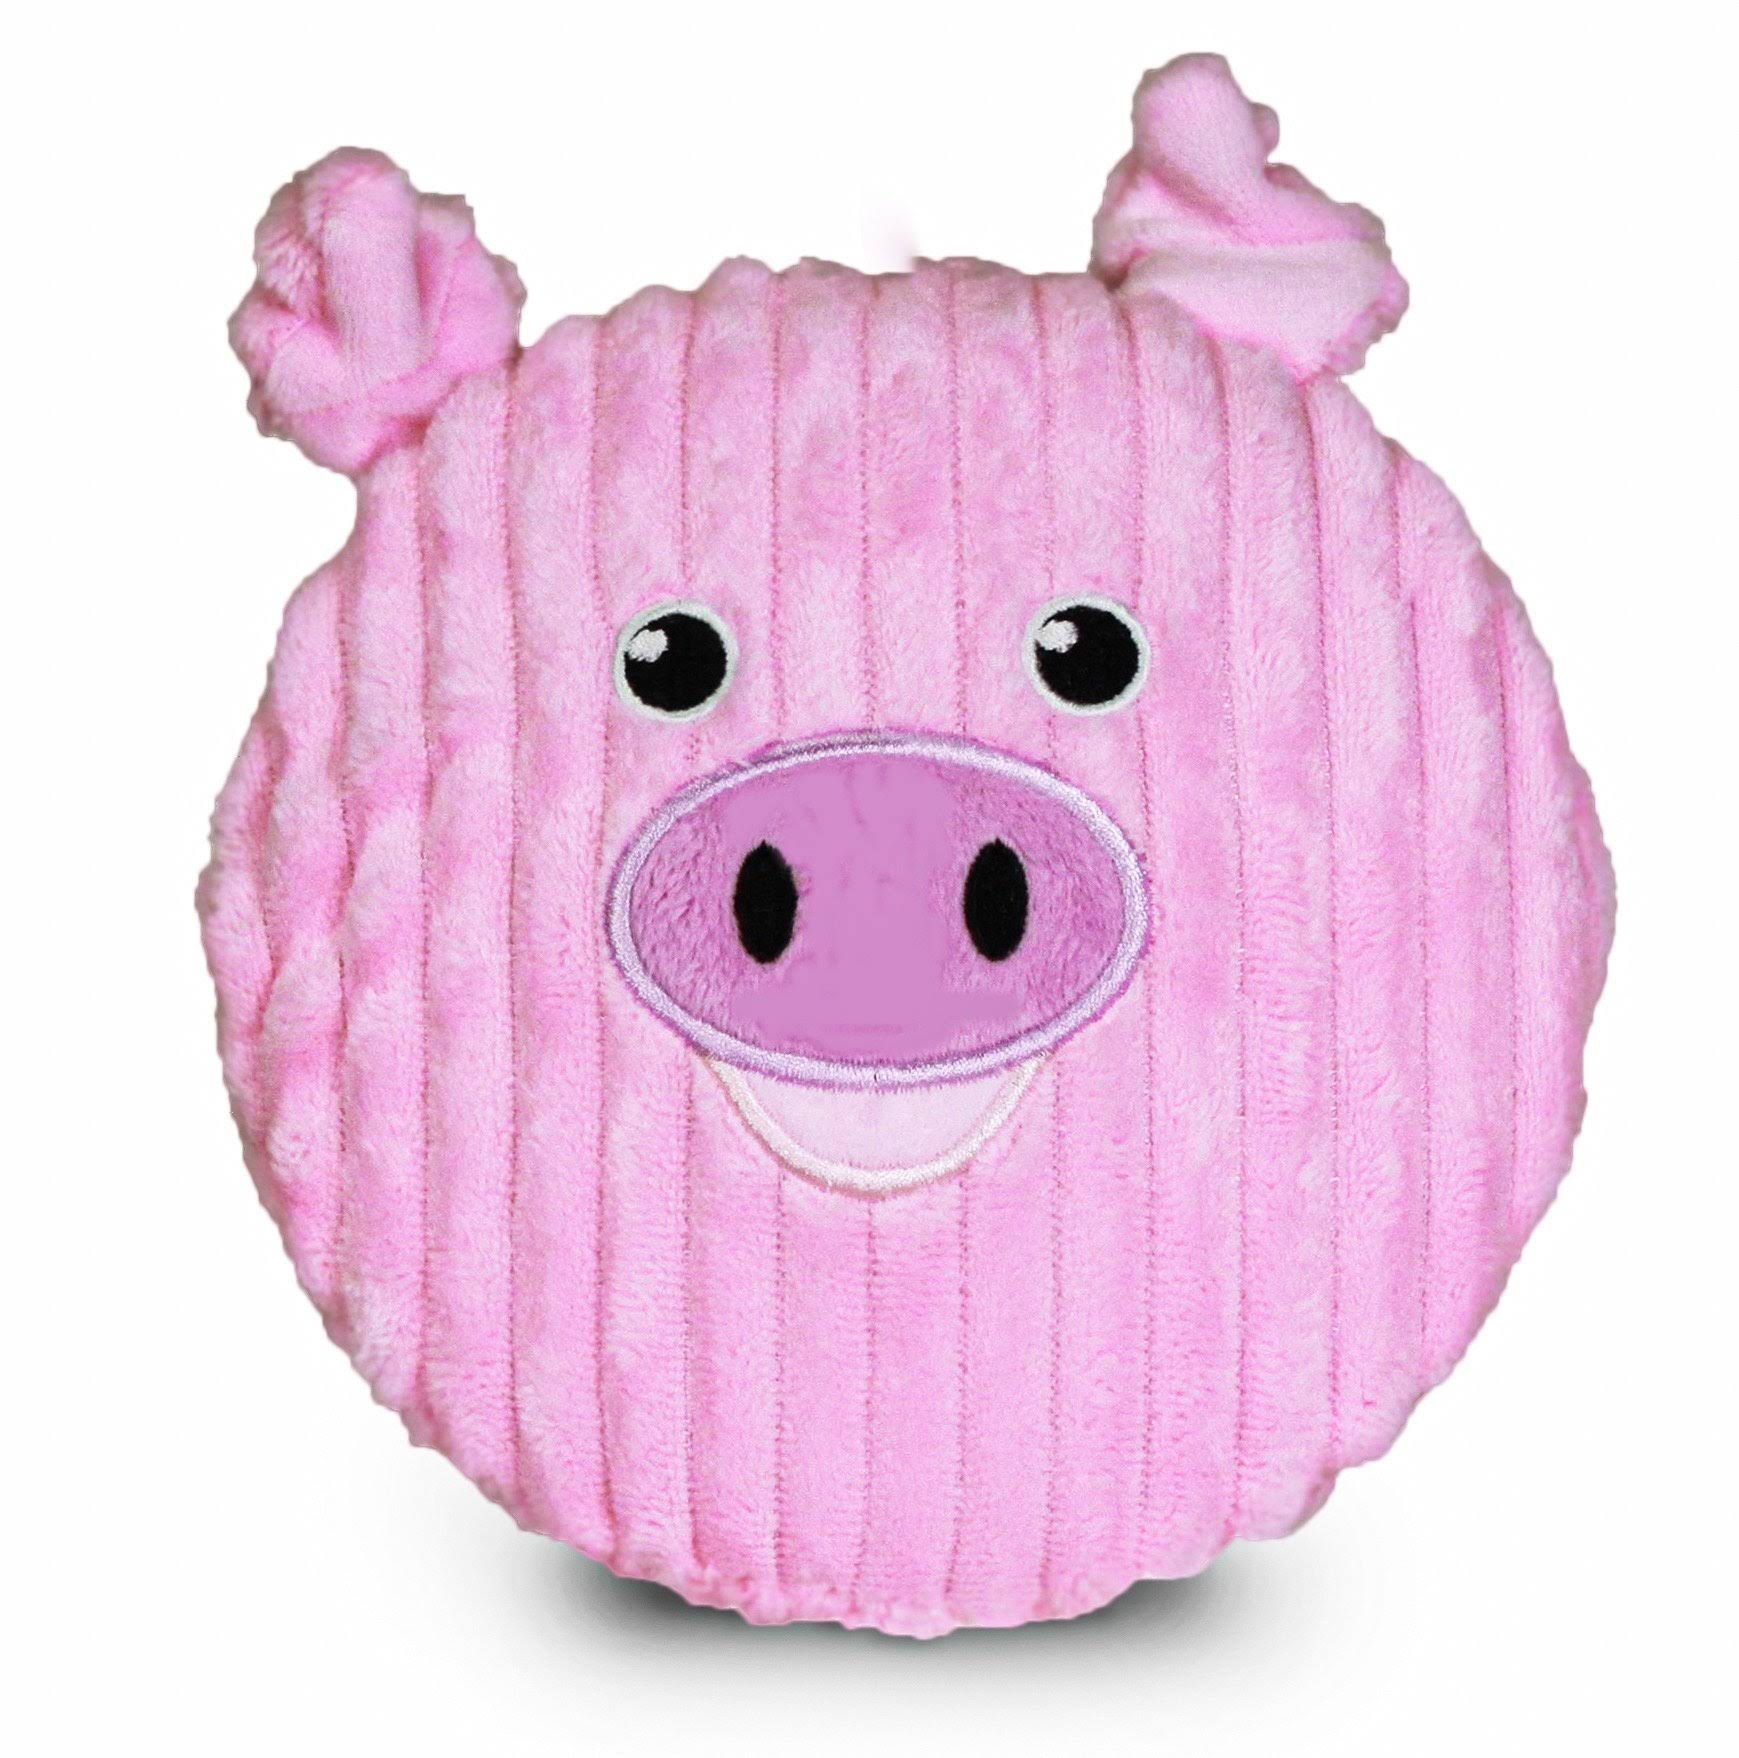 Pet Qwerks Big Squeaker Pig Dog Toy, 7-in